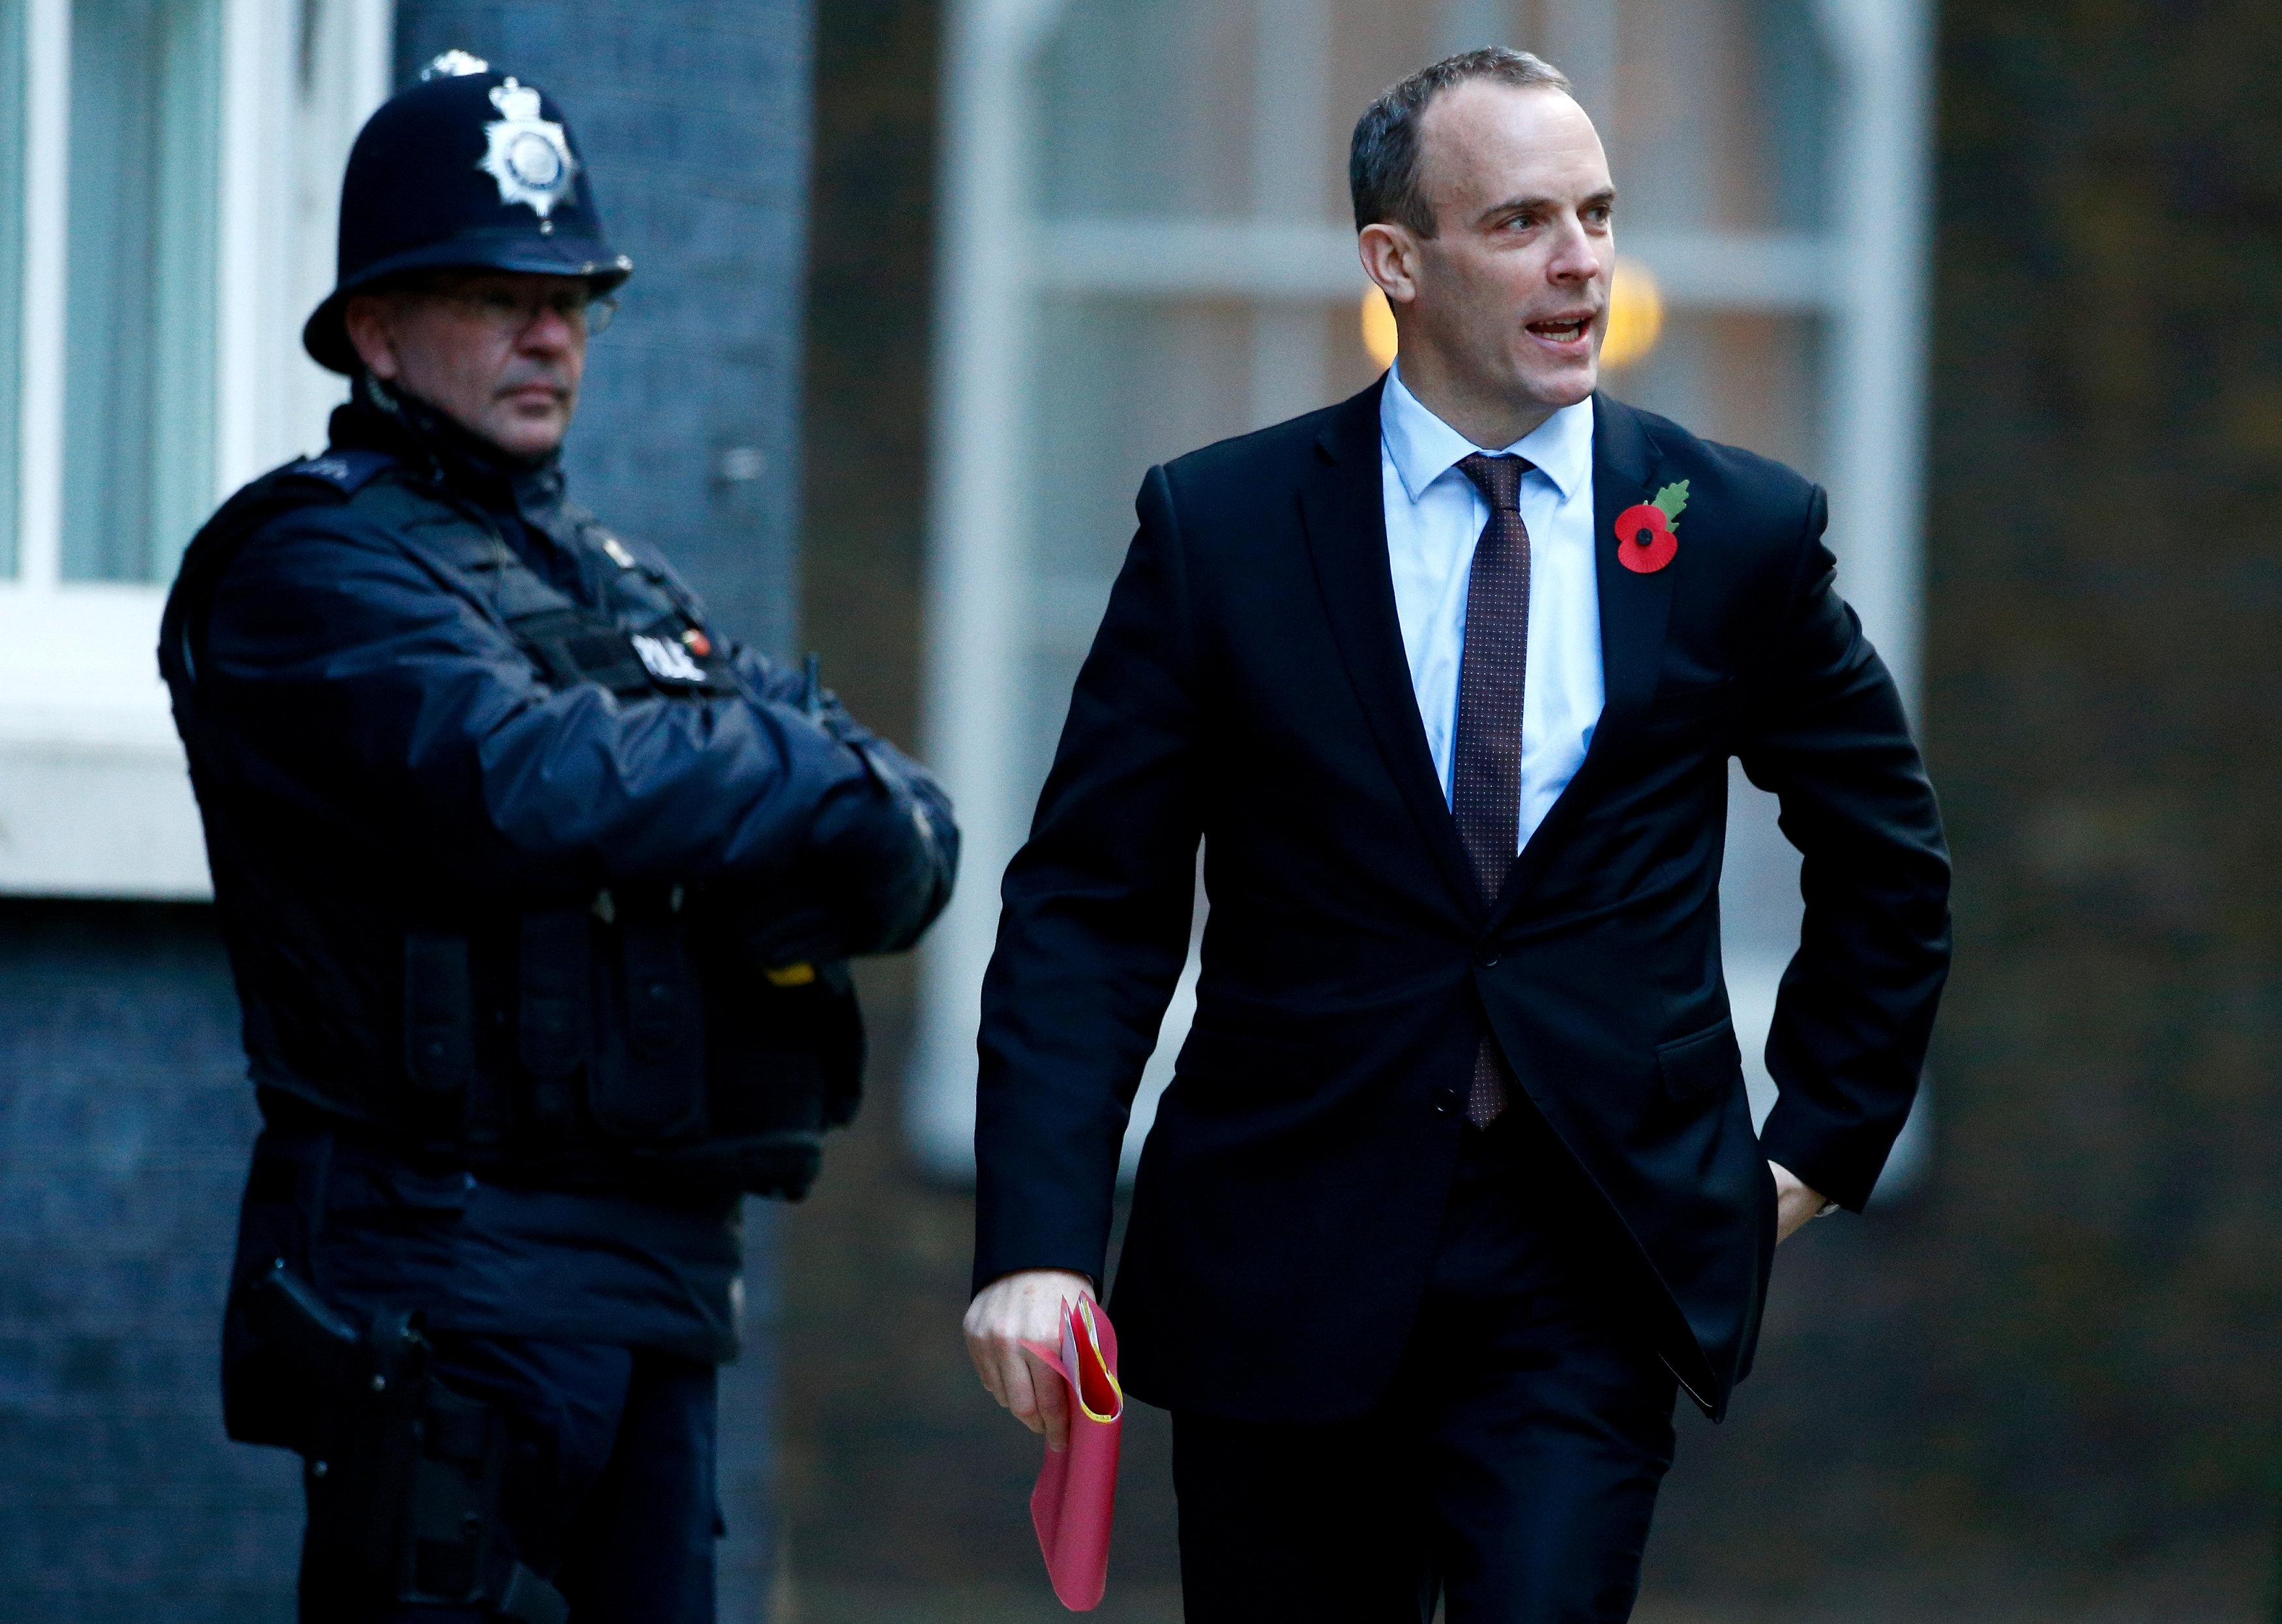 FILE PHOTO: Britain's Secretary of State for Exiting the European Union Dominic Raab arrives in Downing Street in London, Britain, October 29, 2018. REUTERS